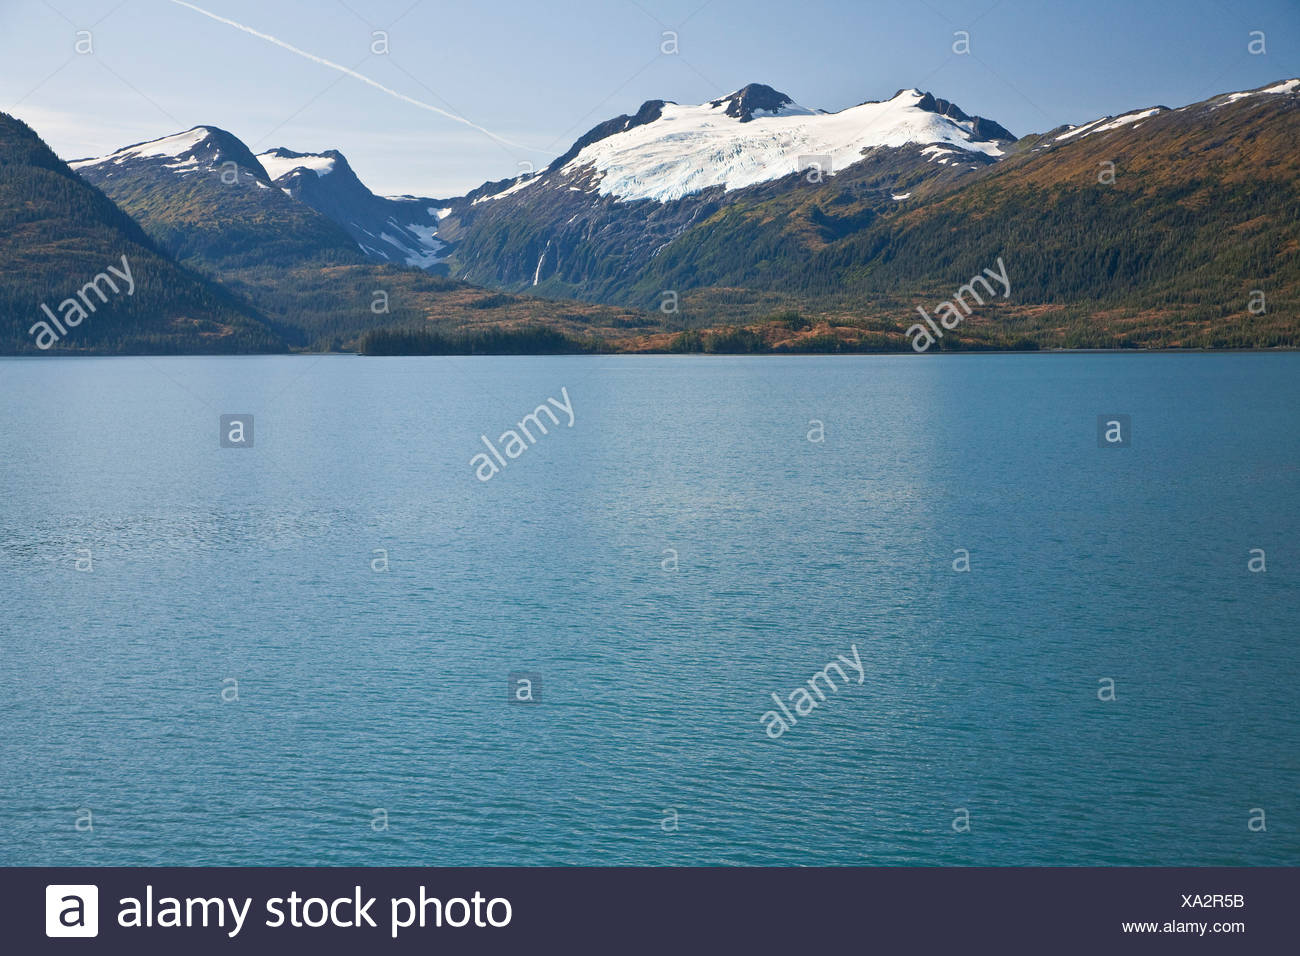 Cap glacier Chugach Mountiains in Prince William Sound, Chugach National Forest. Southcentral, Alaska - Stock Image